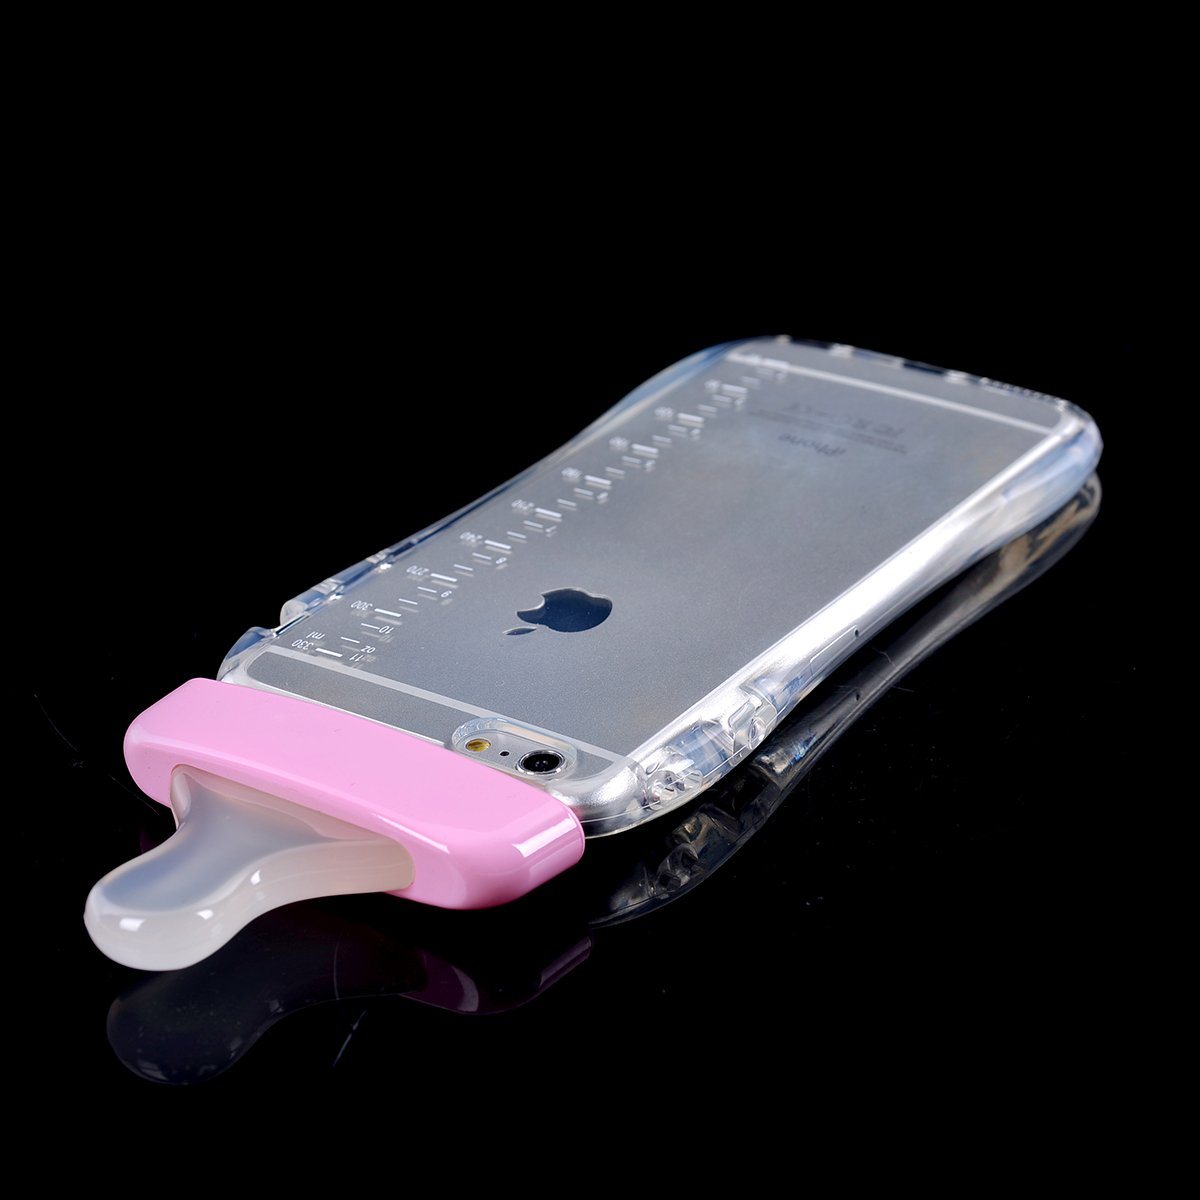 Generic Baby Bottle Cute 3d Tpu Soft Pregnant Woman Milk Case Led Iphone 6 Plus Clear Lanyard Cover For Pink Cell Phones Accessories